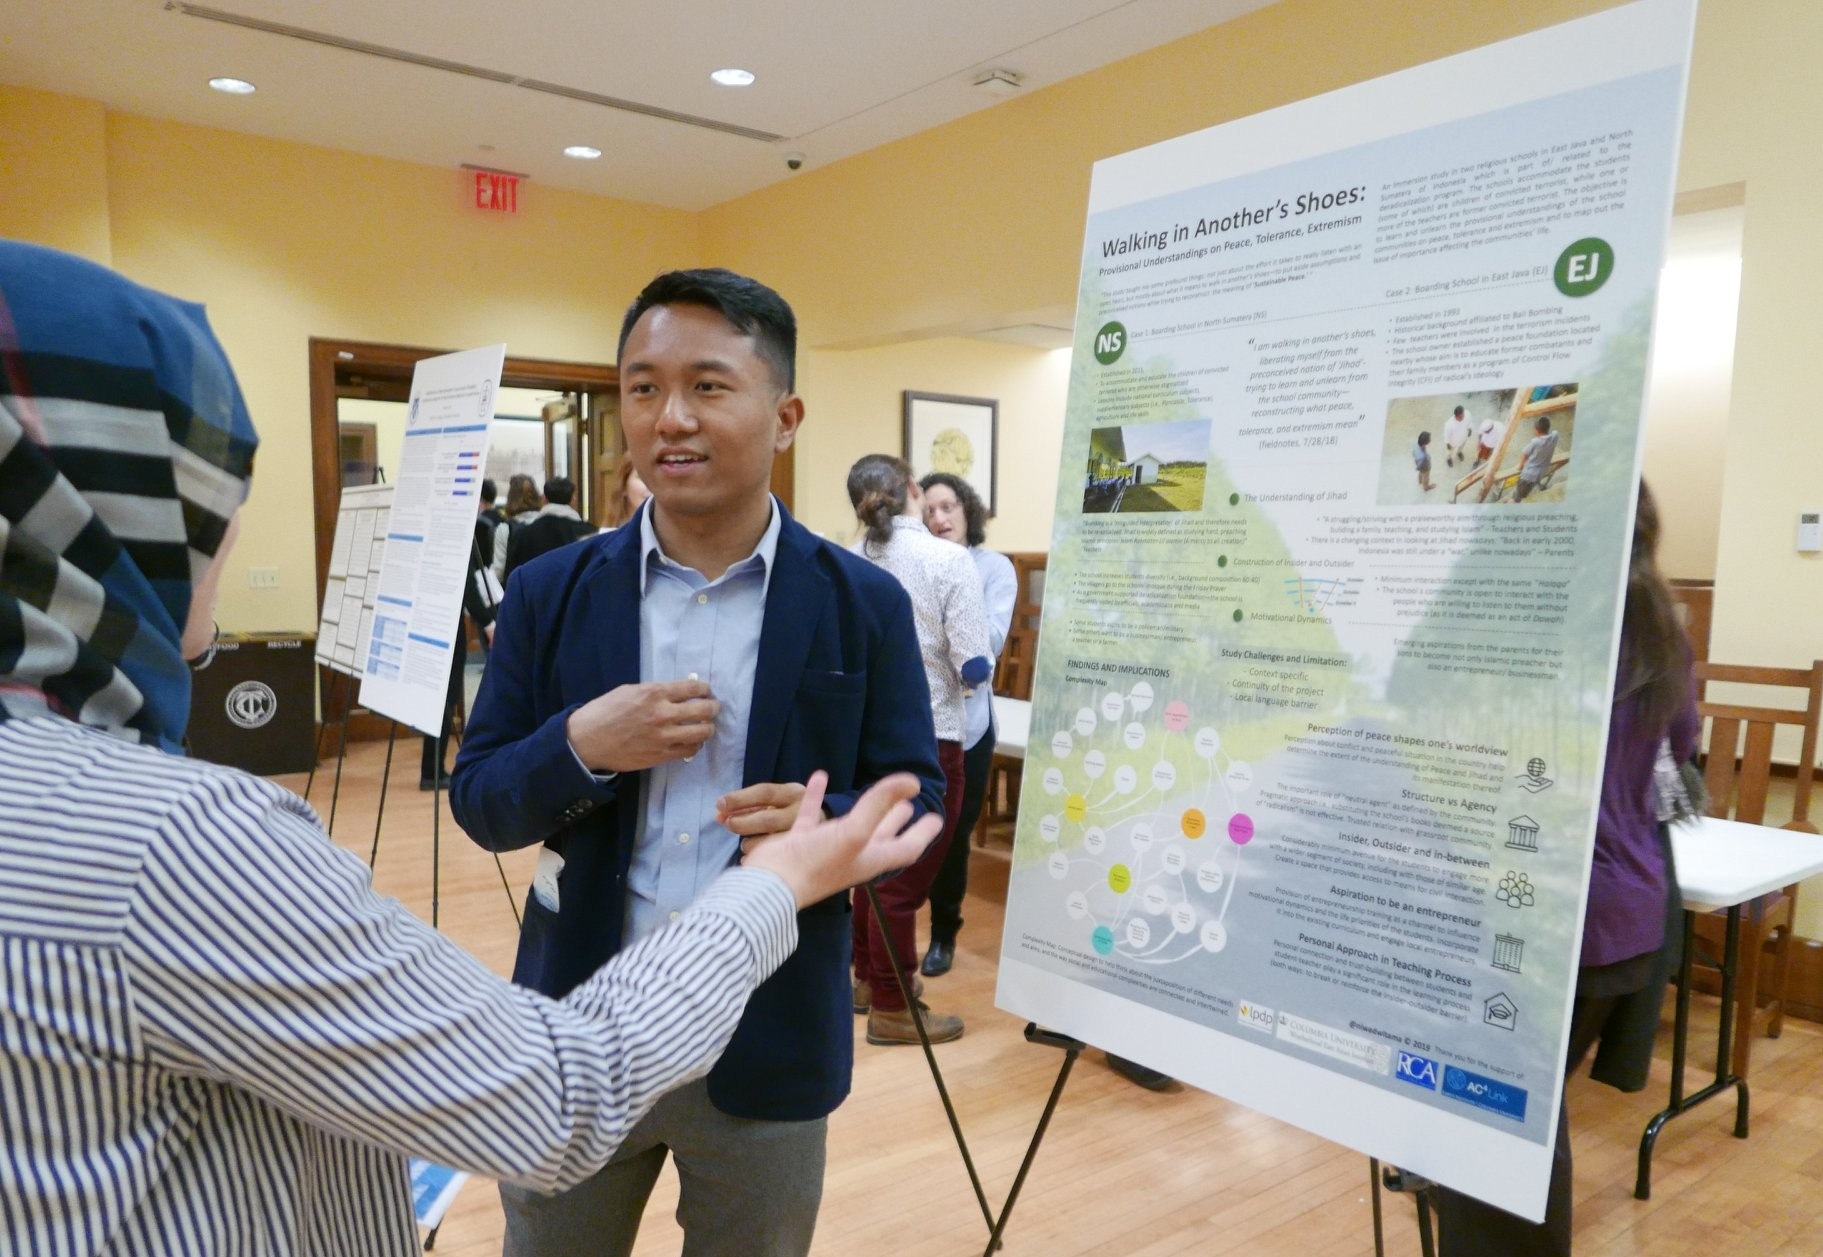 Graduate Student Fellow presenting research at the Annual sustaining peace forum in March 2019